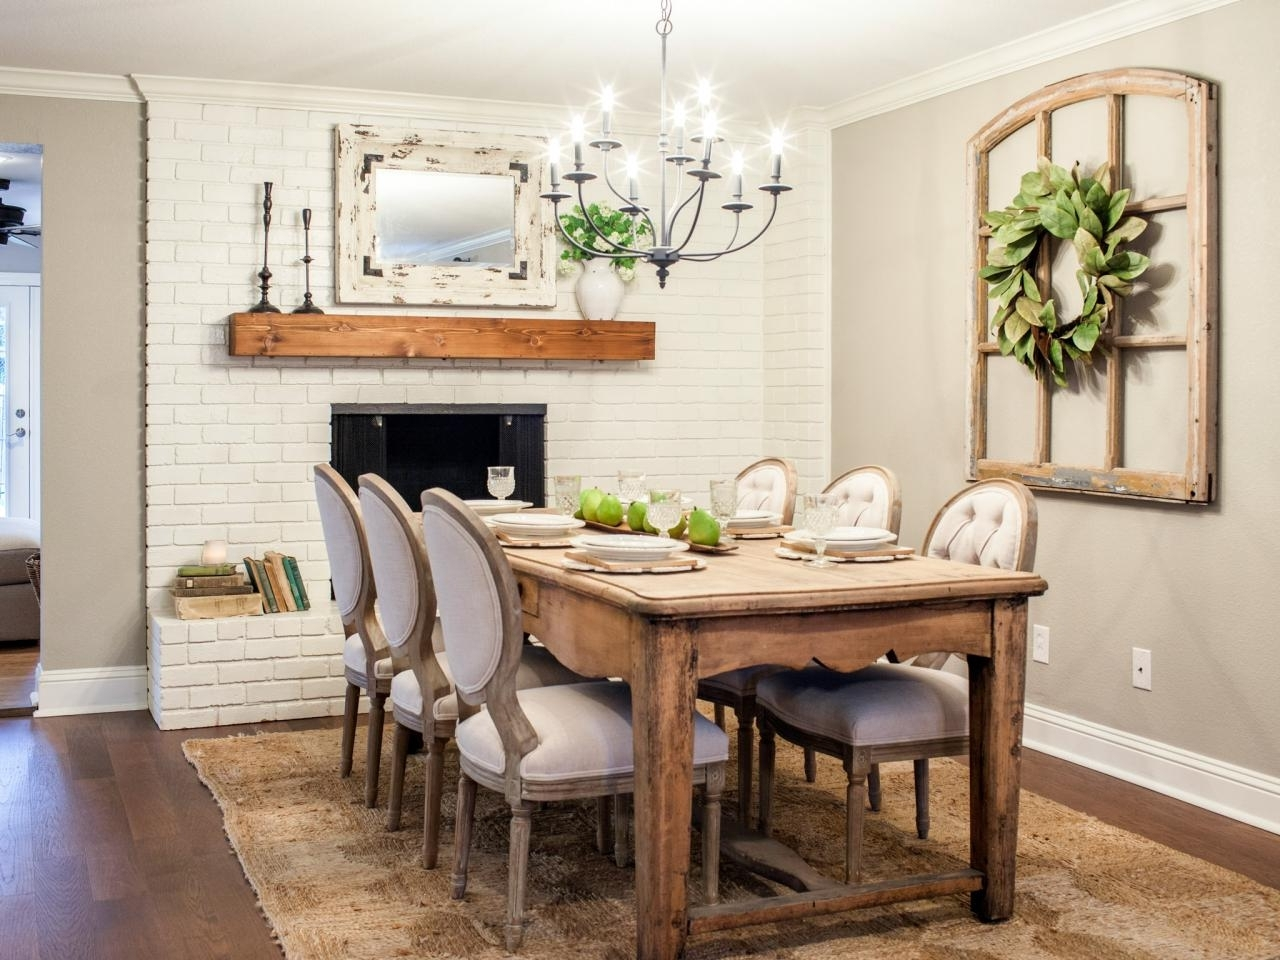 Joanna Gaines' Design Tips: Diy A Rustic Dining Room 10+ Joanna Gaines Dining Room Decorating Ideas Inspirations